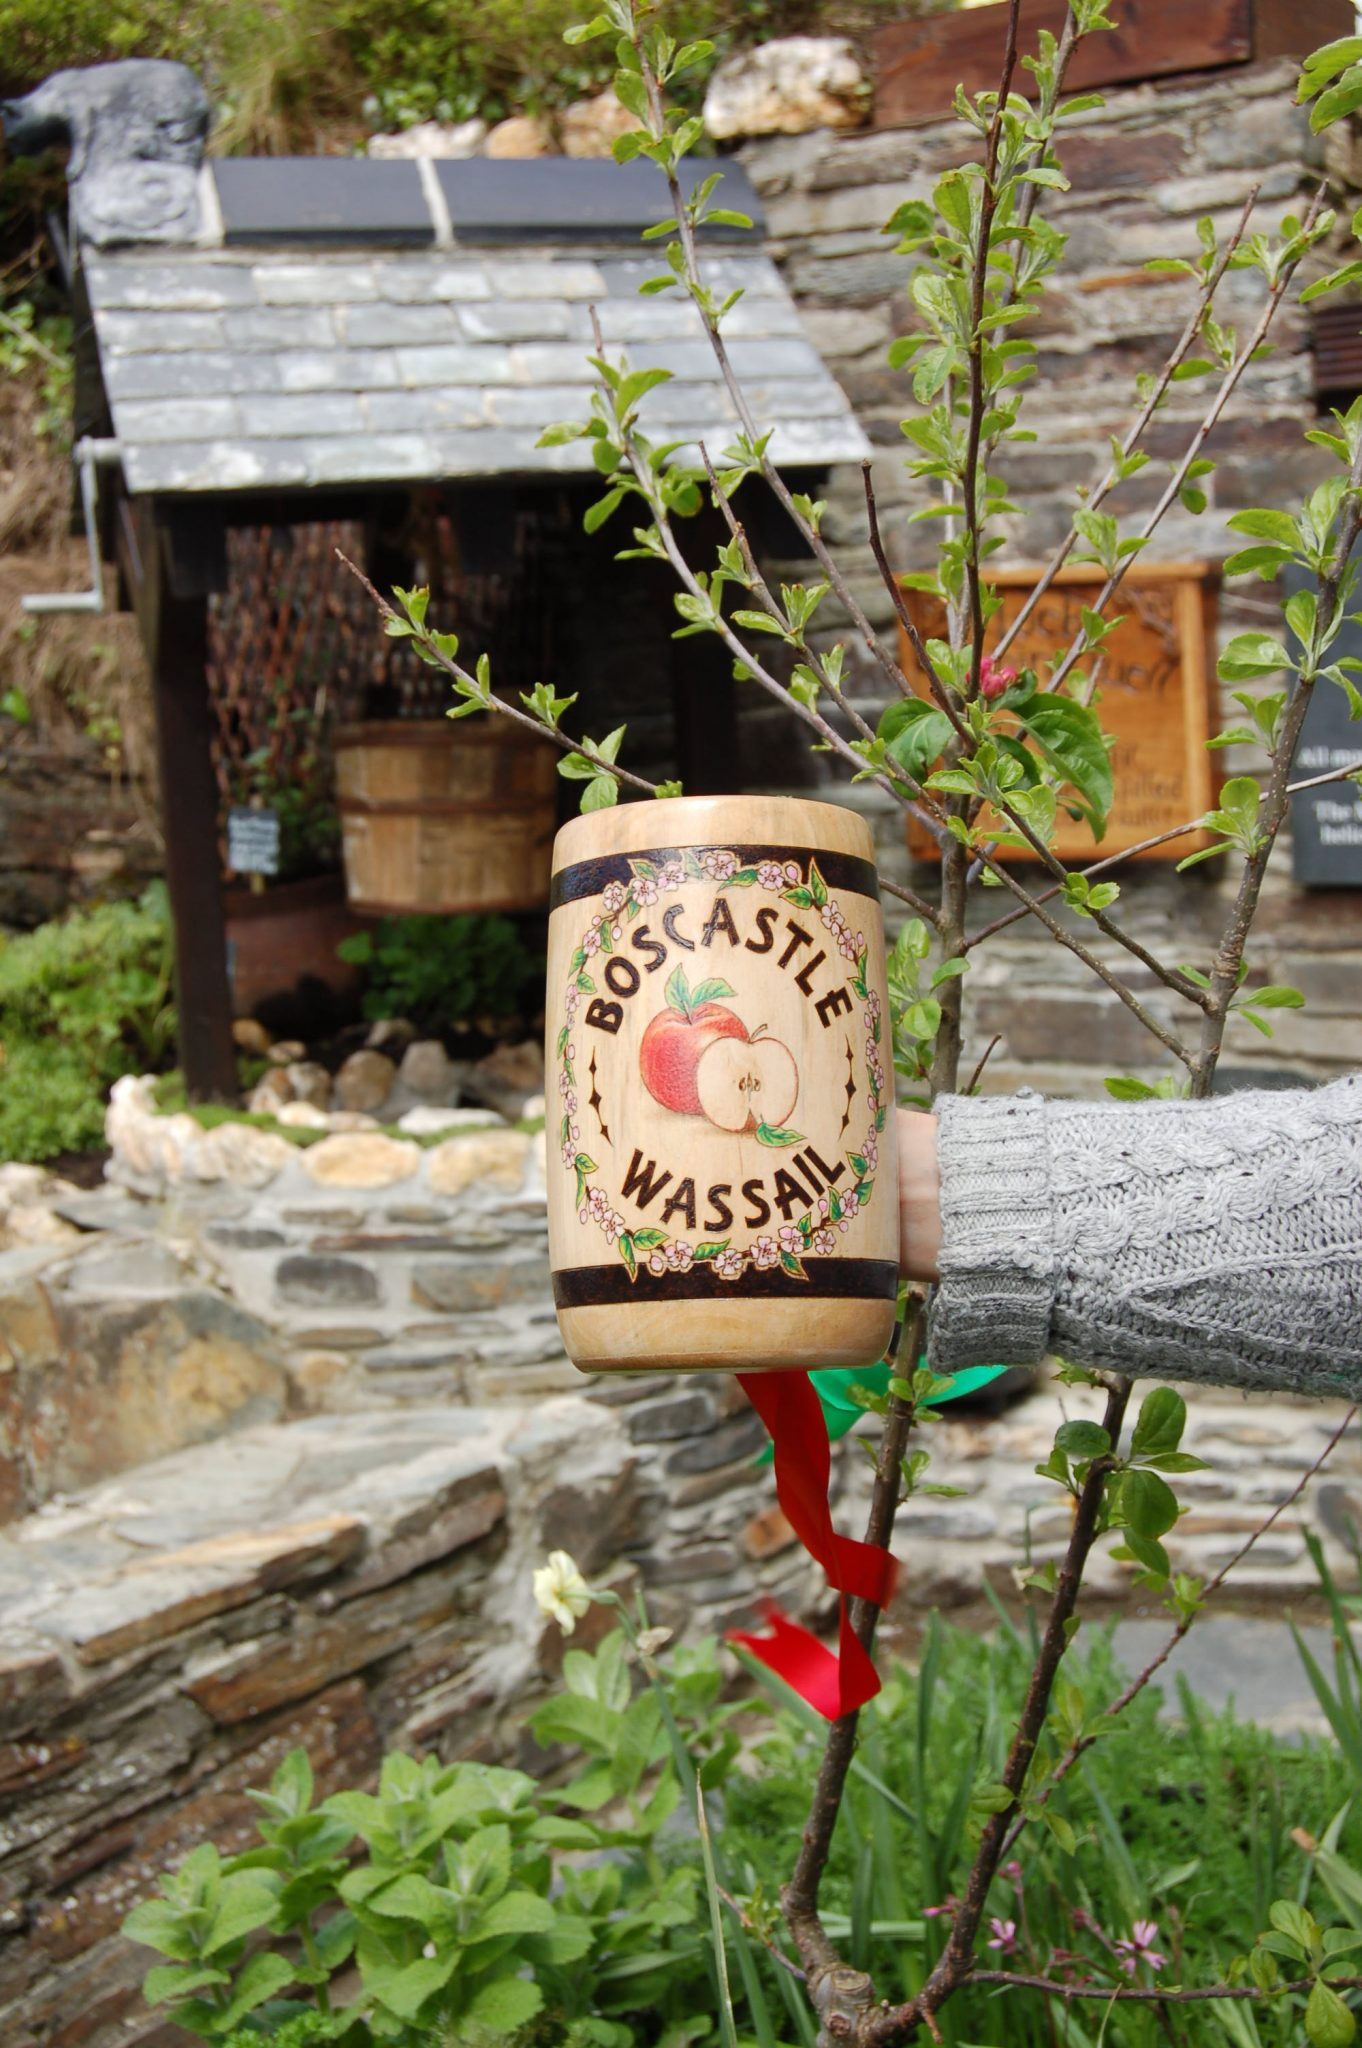 Wassail cup and apple tree